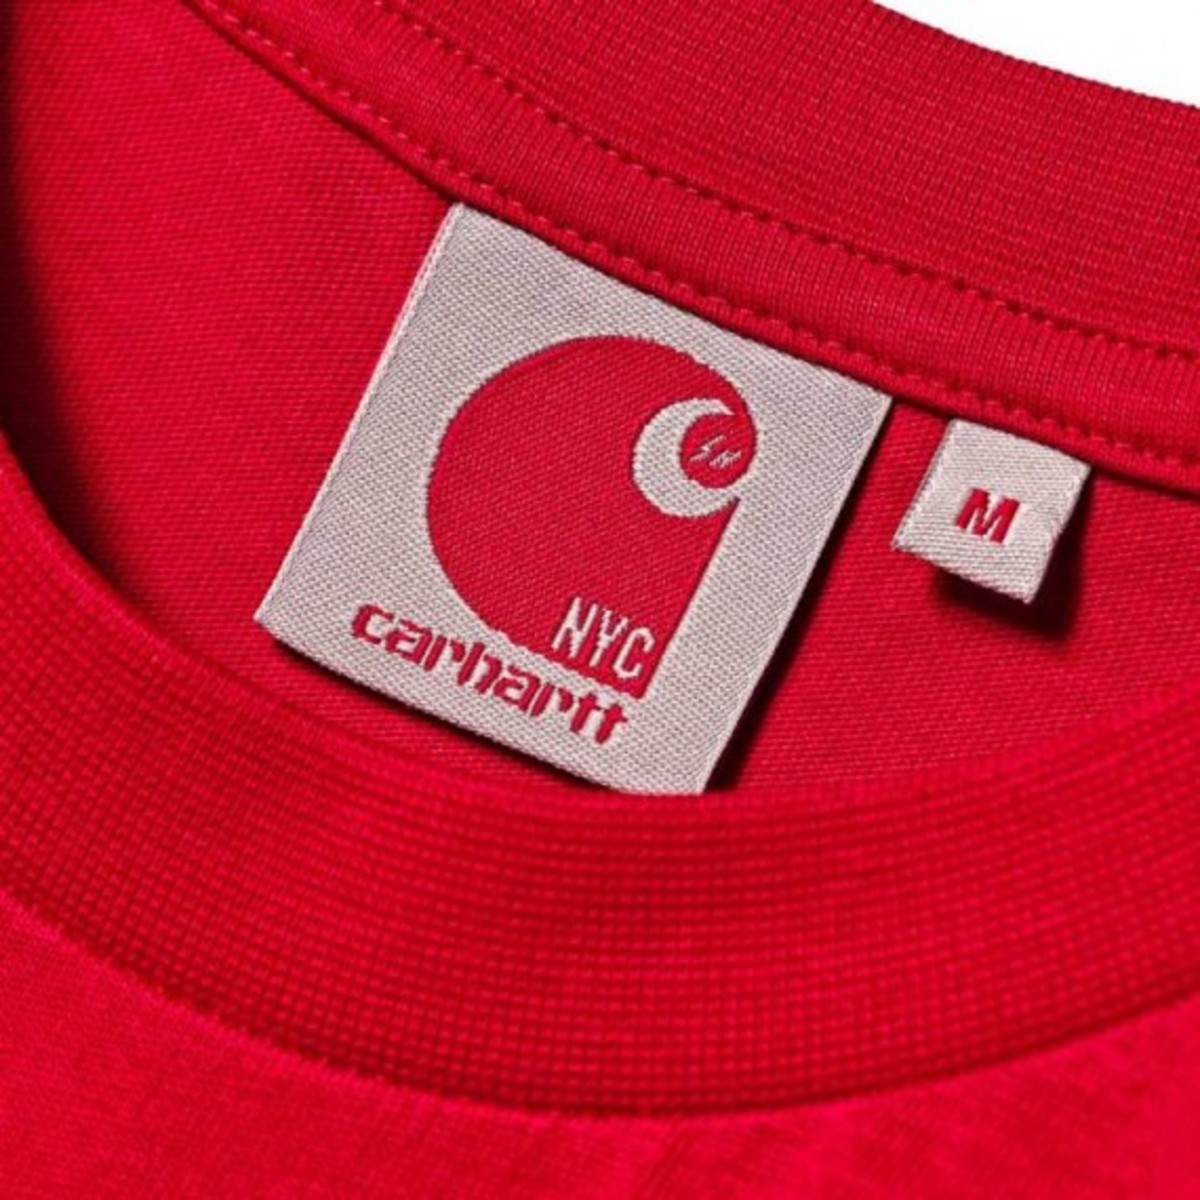 carhartt-wip-fragment-design-nyc-03